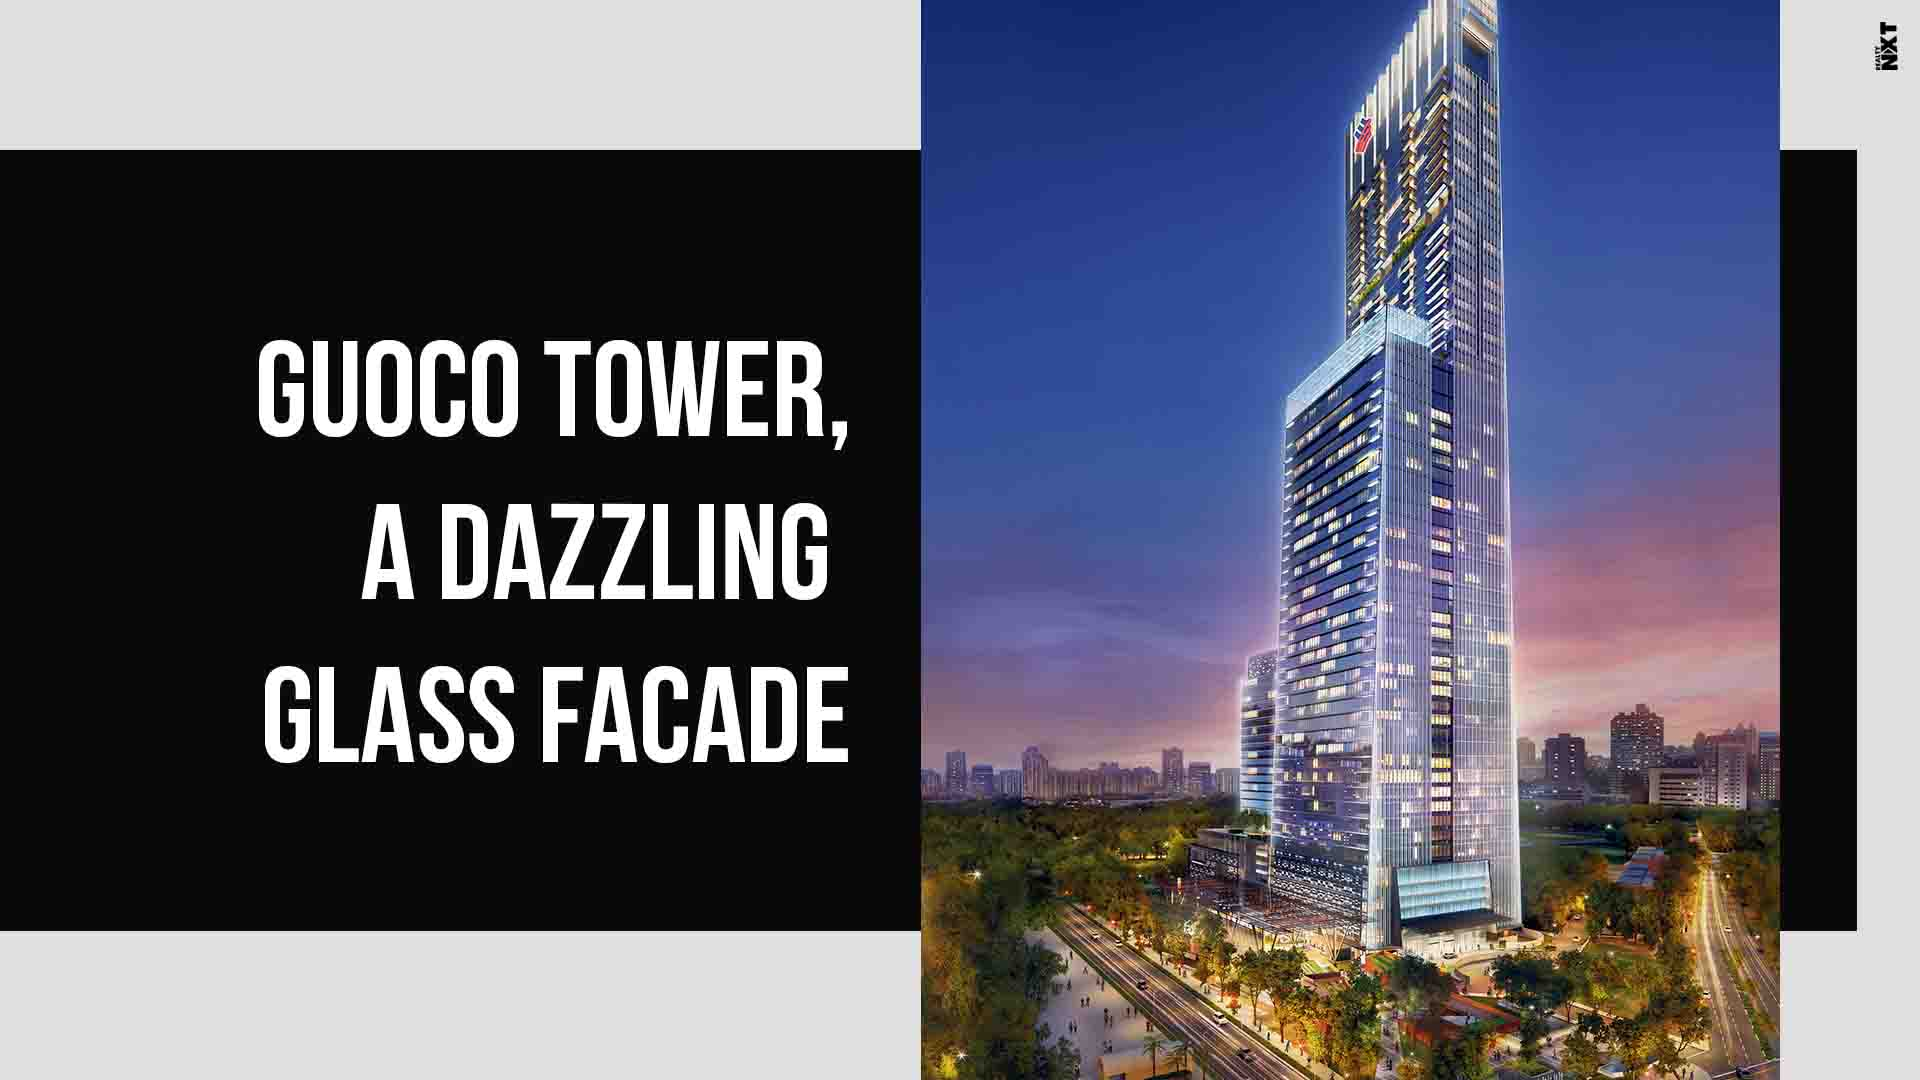 Inside Singapore's Tallest Building, Guoco Tower